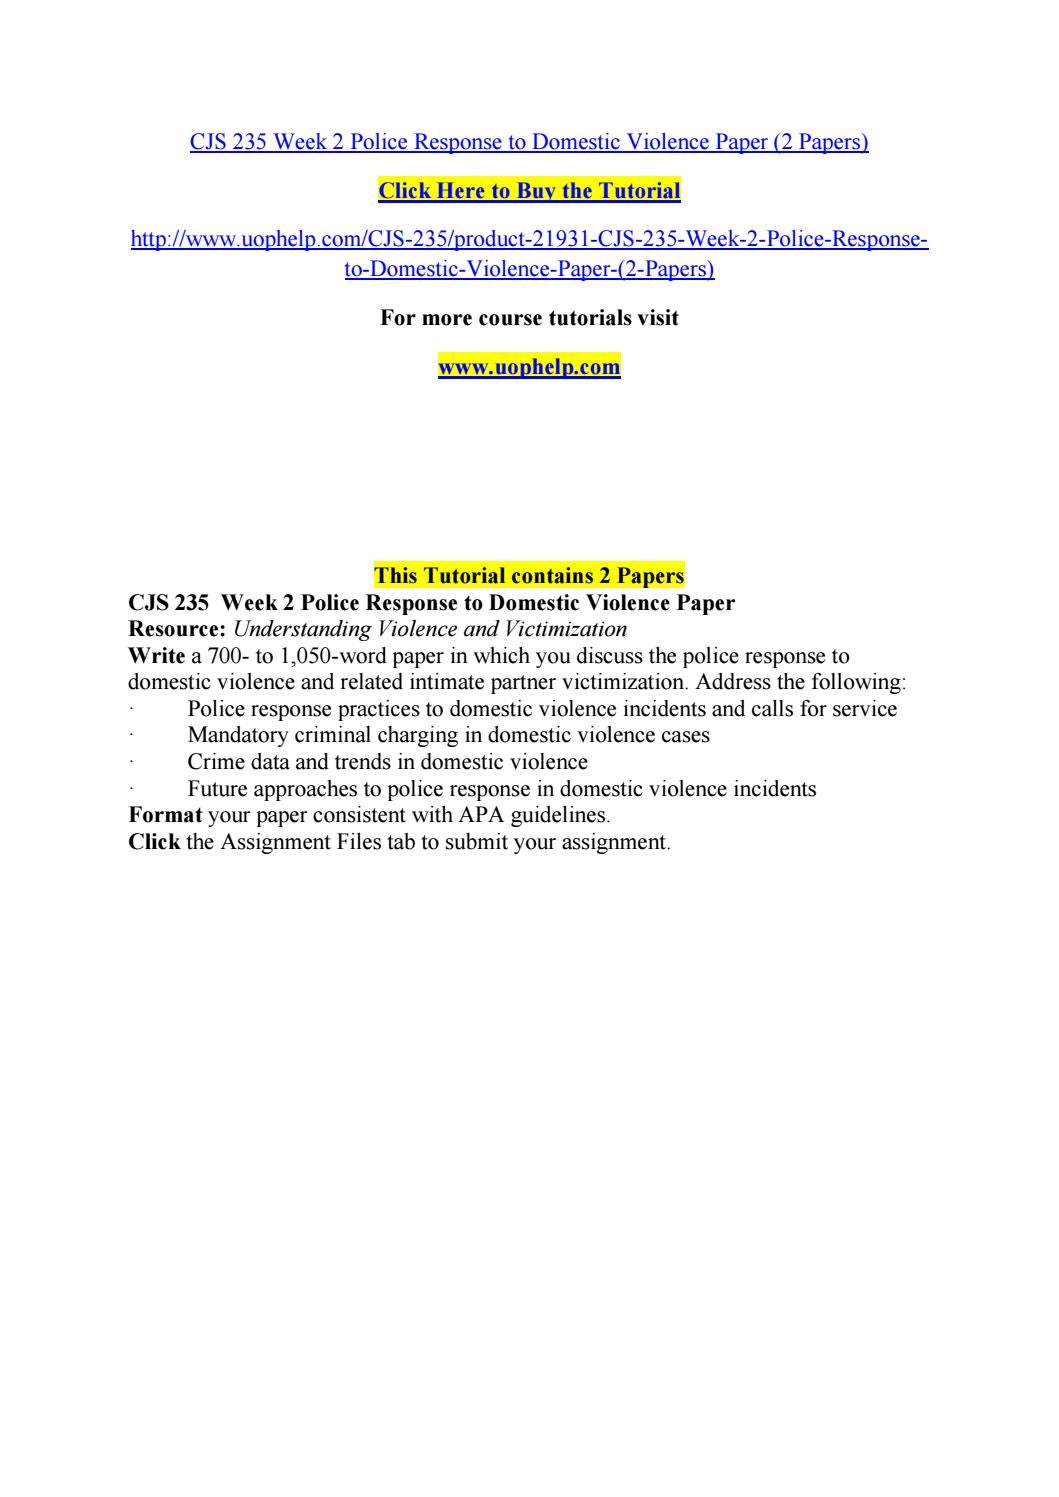 Distance learning creative writing courses ufl dissertation